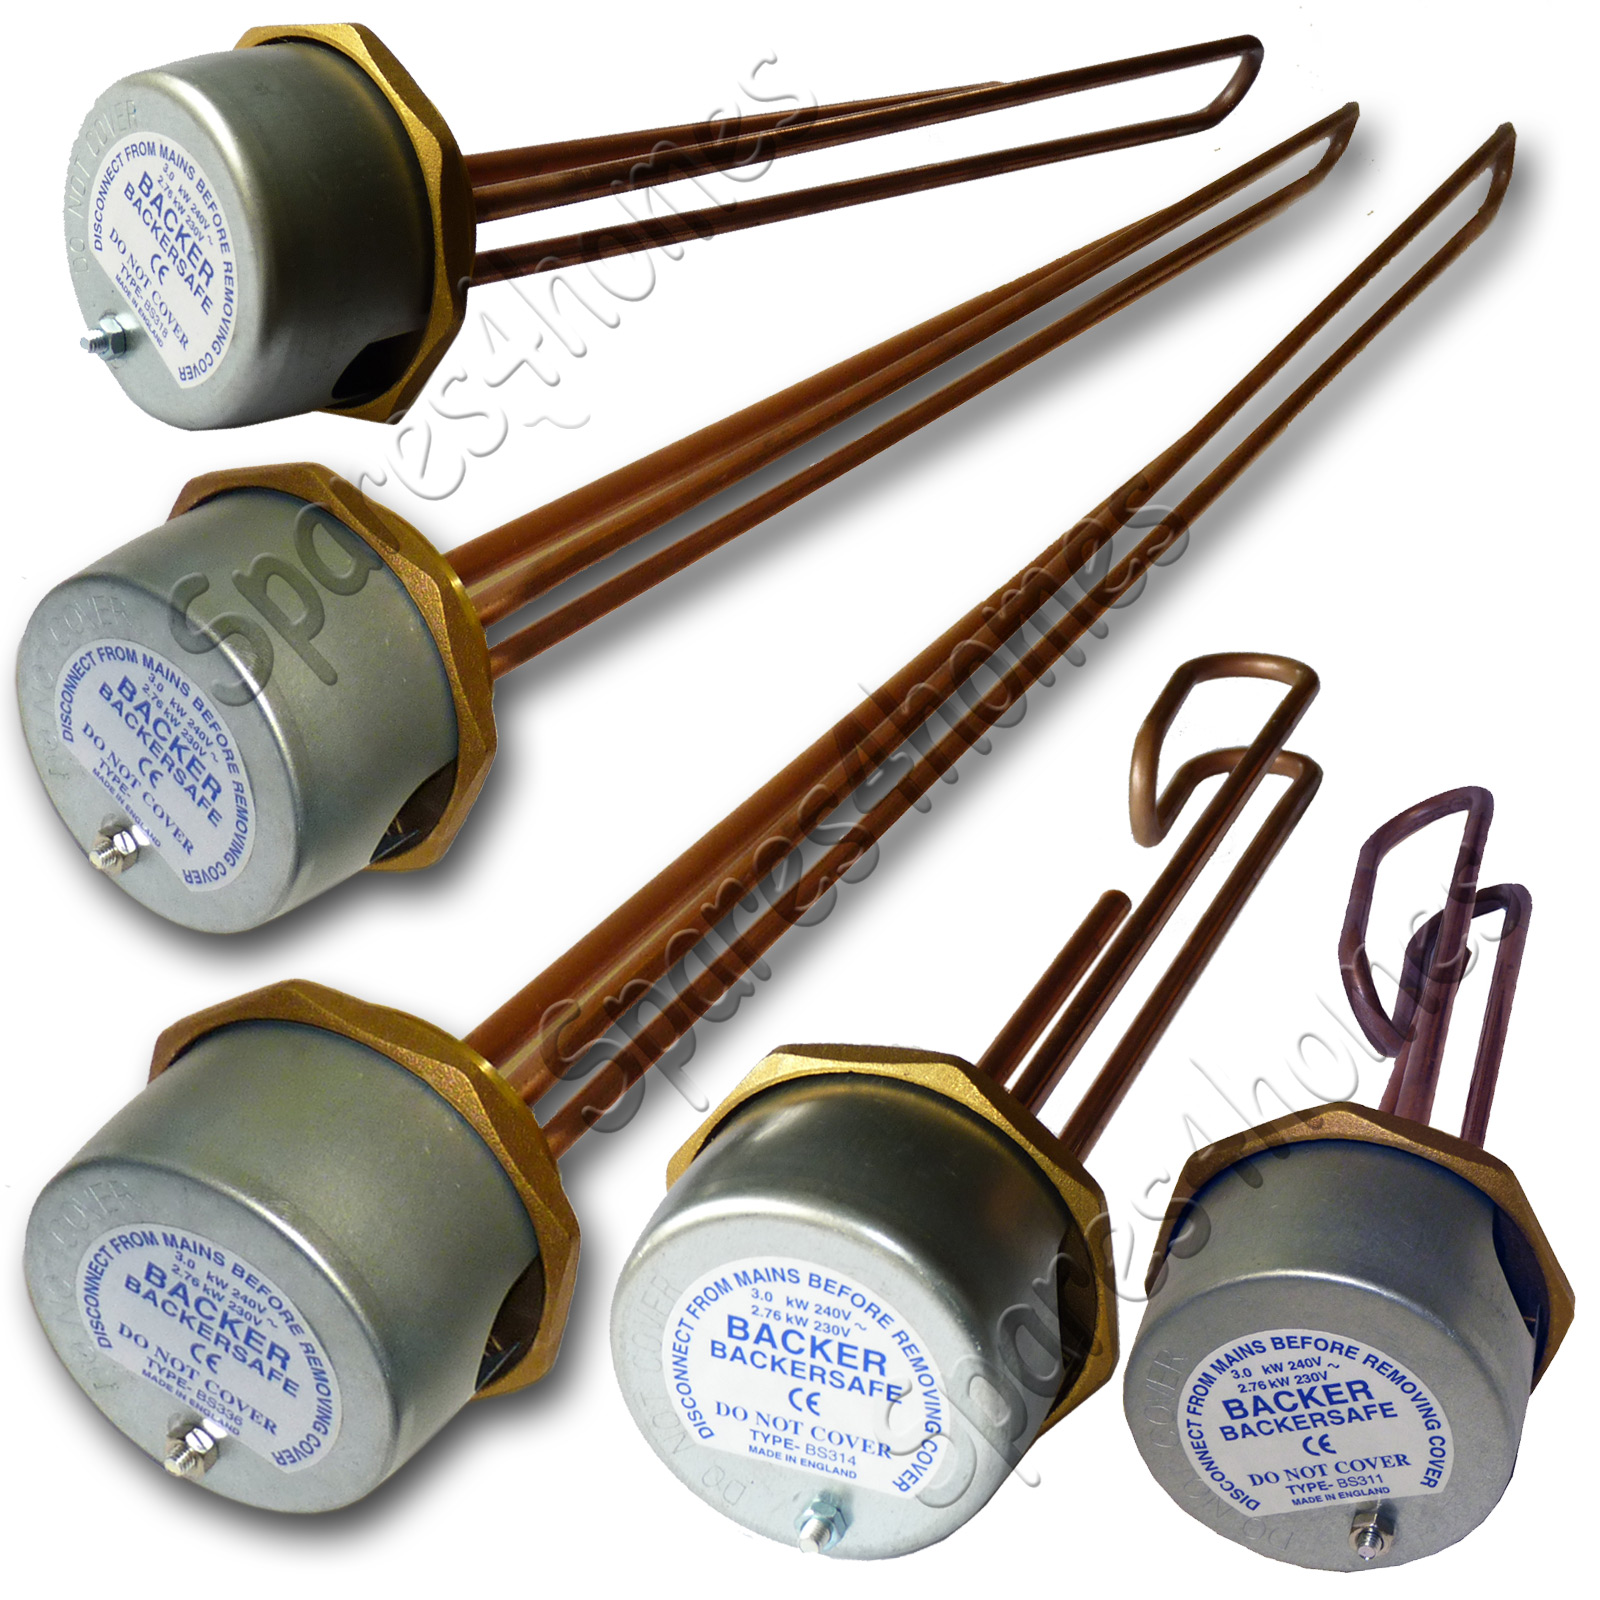 Immersion Heater Spares - Hot Water Heater Spares | Spares4Homes